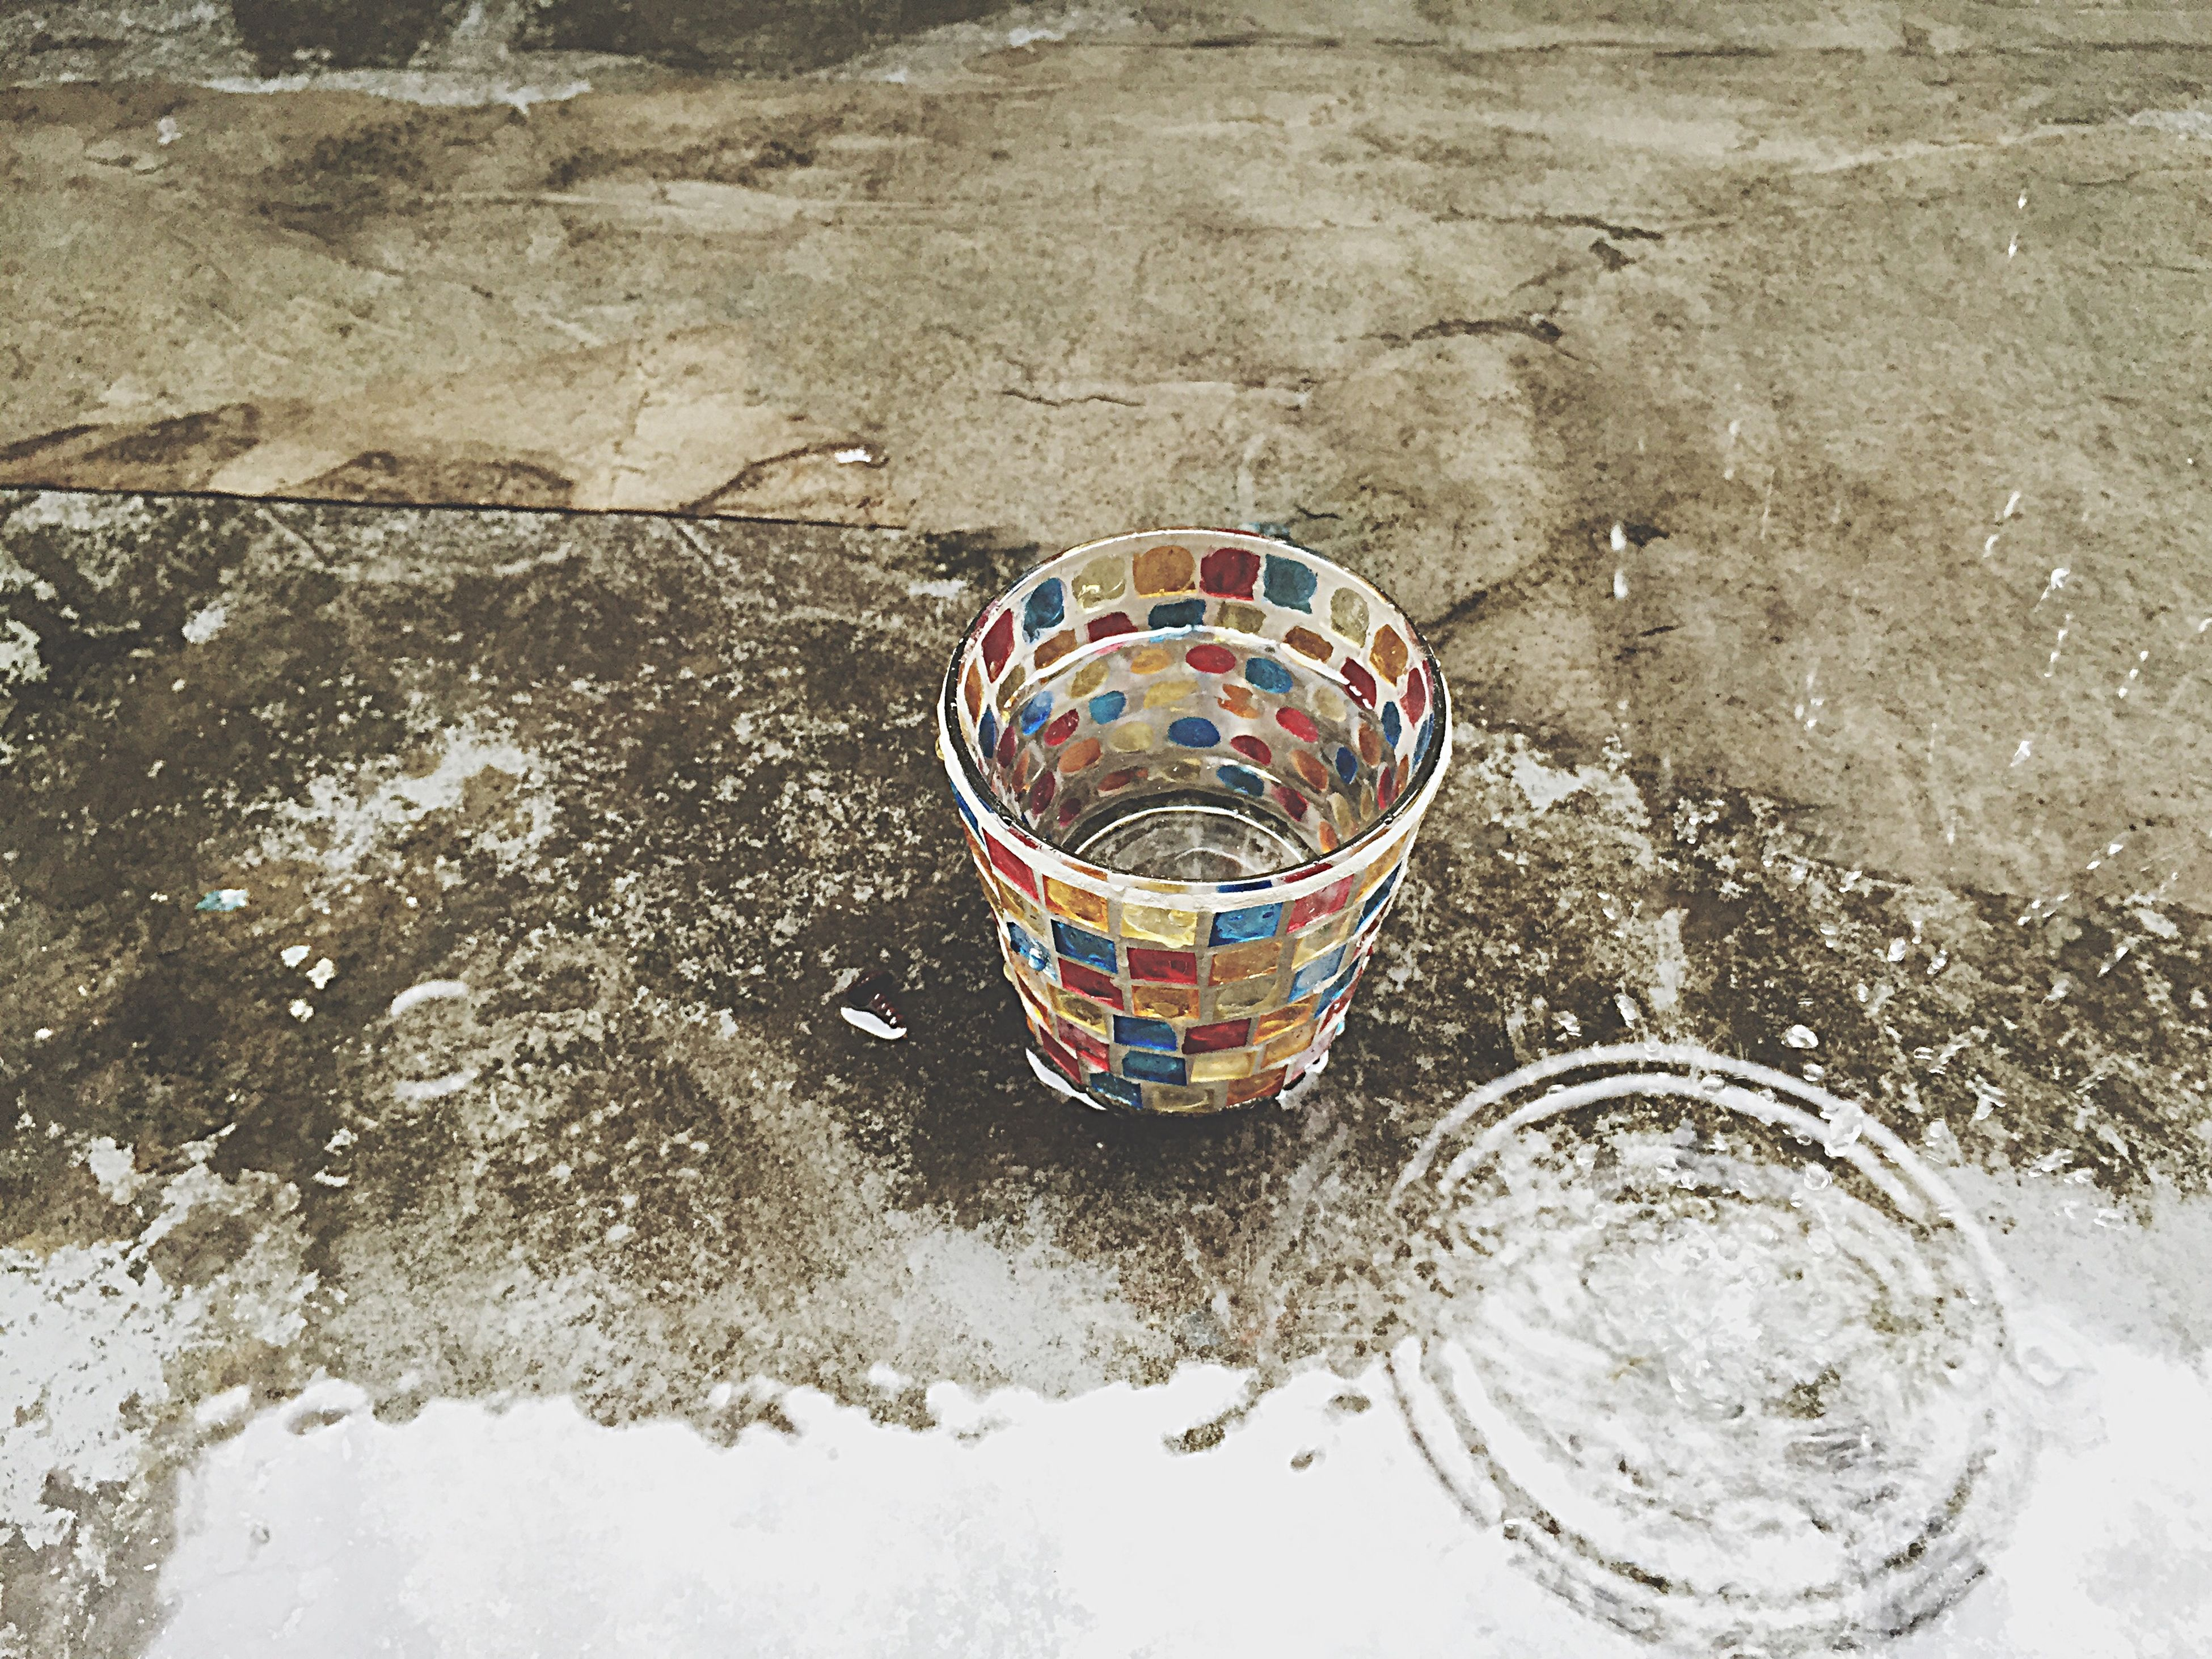 water, high angle view, multi colored, reflection, circle, day, no people, outdoors, waterfront, close-up, blue, nature, pattern, directly above, rock - object, transportation, rippled, bicycle, motion, single object